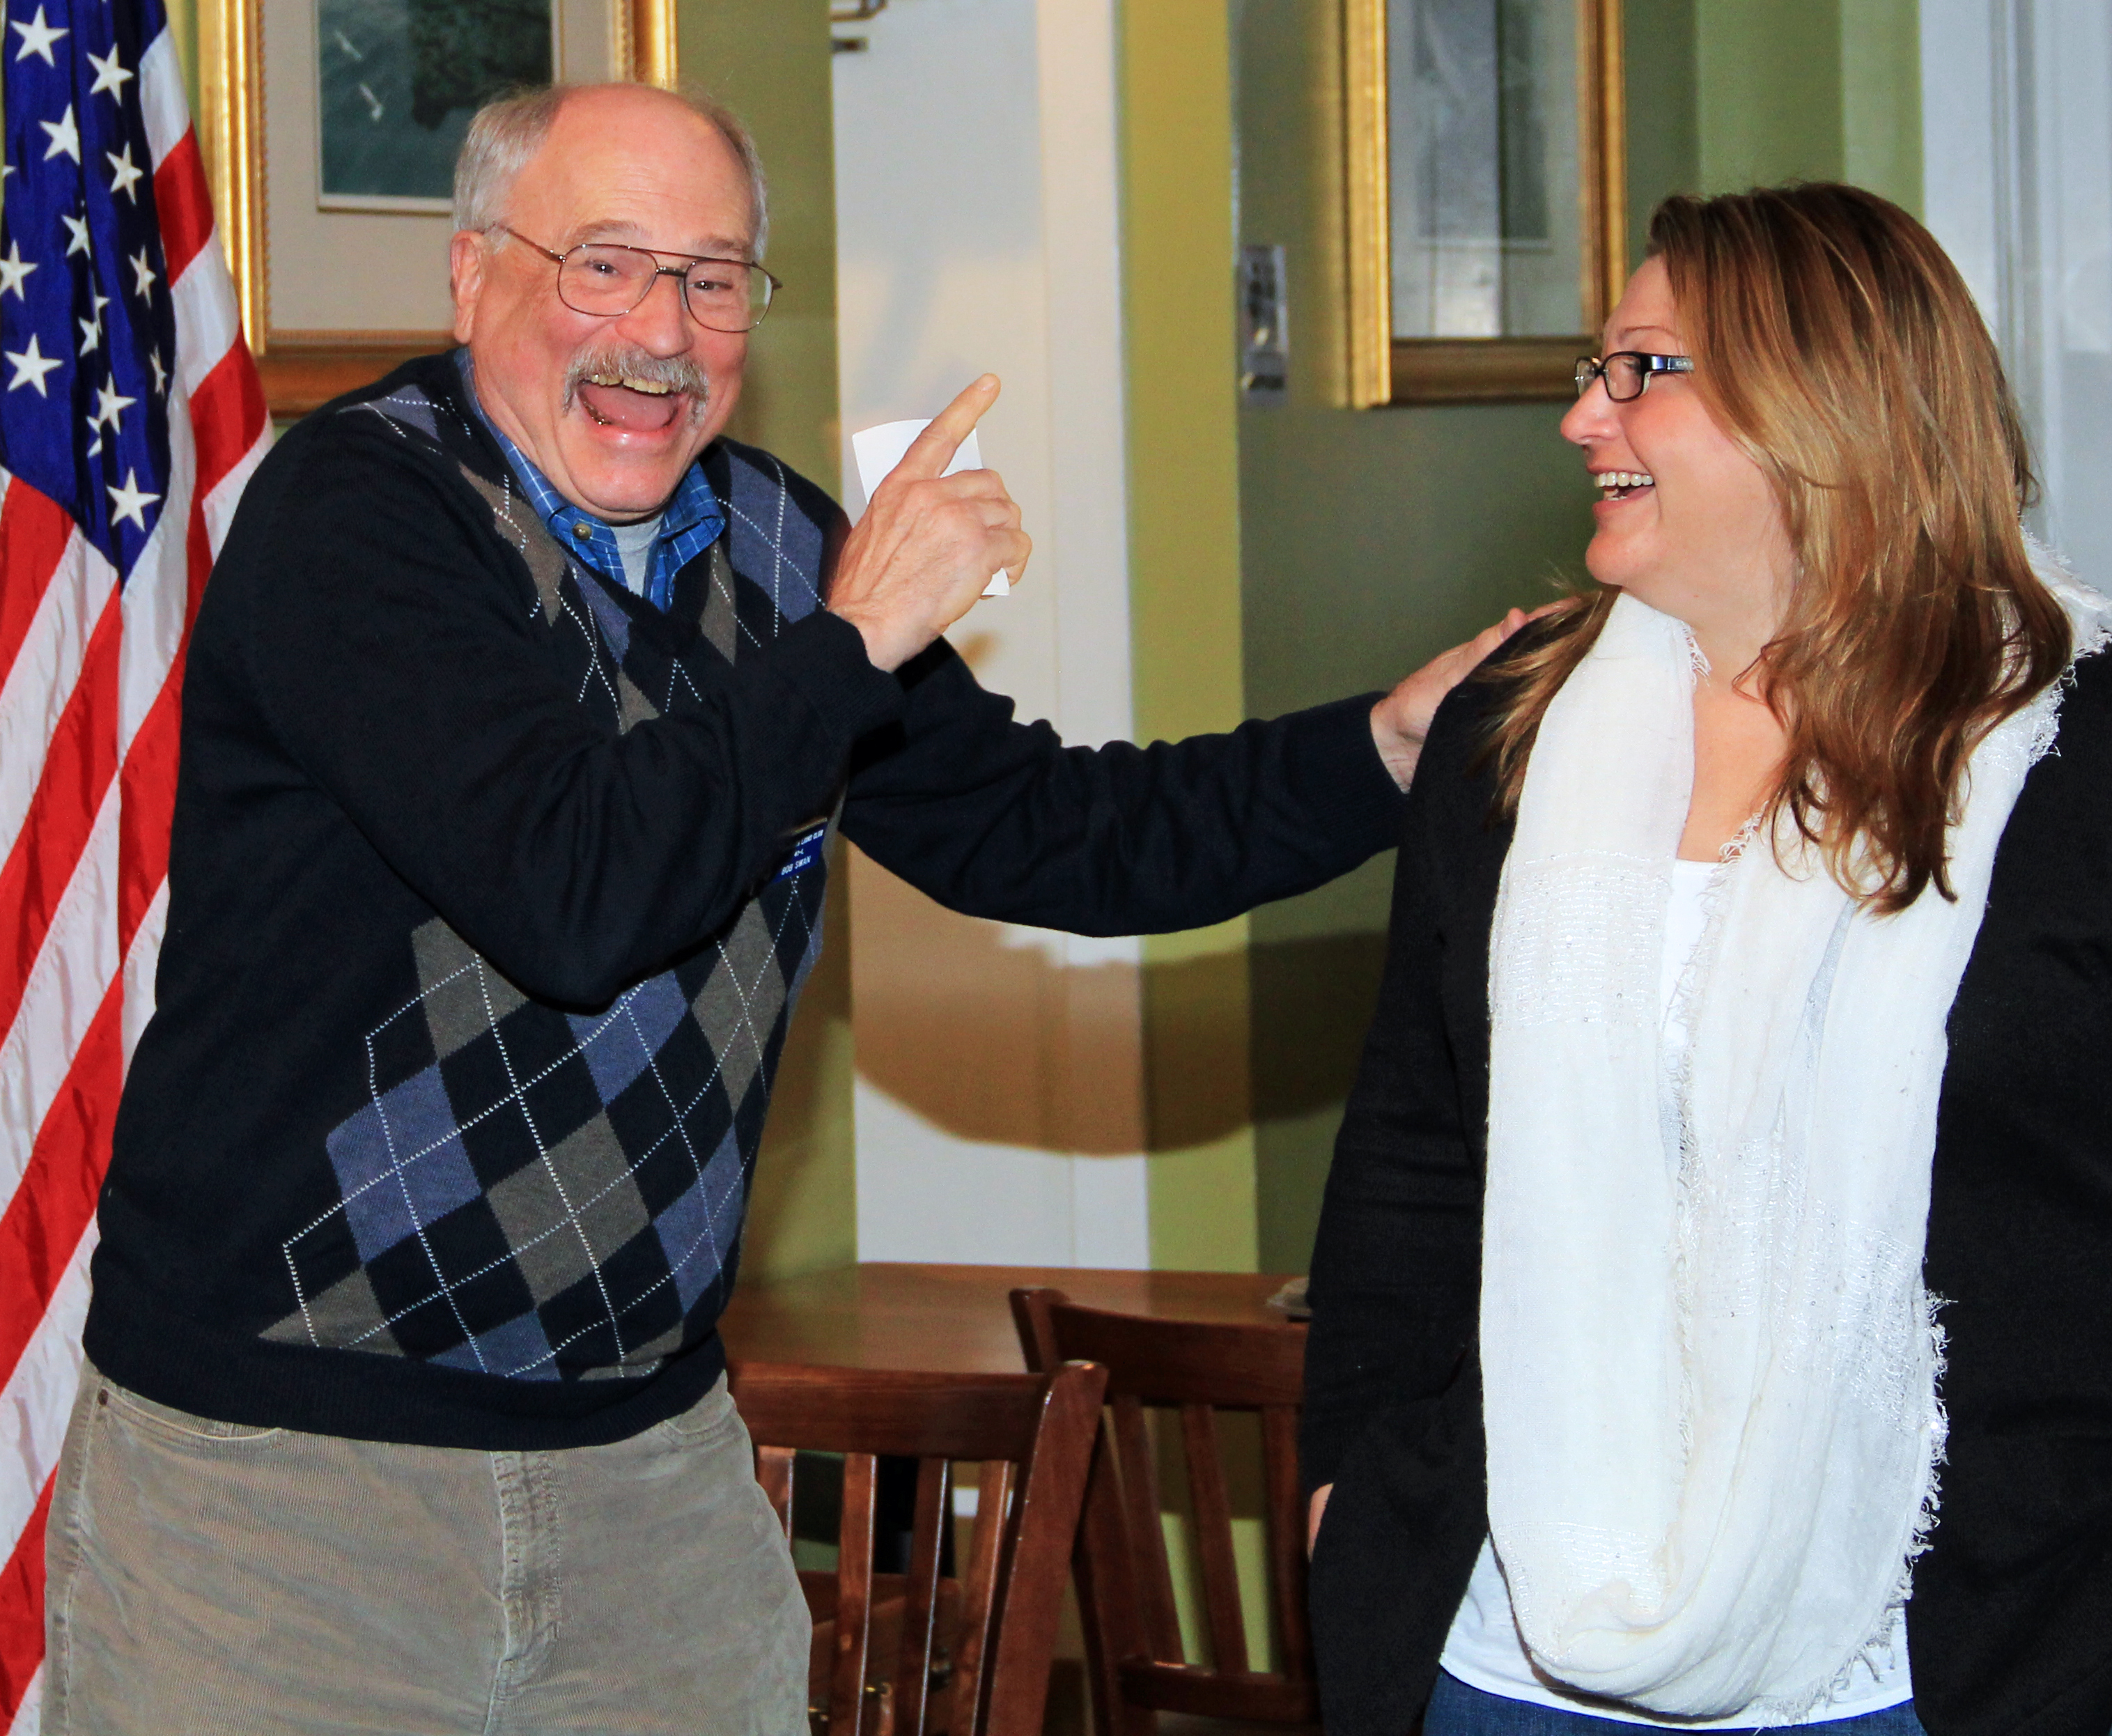 News - The Lions Club of Yarmouth, Maine